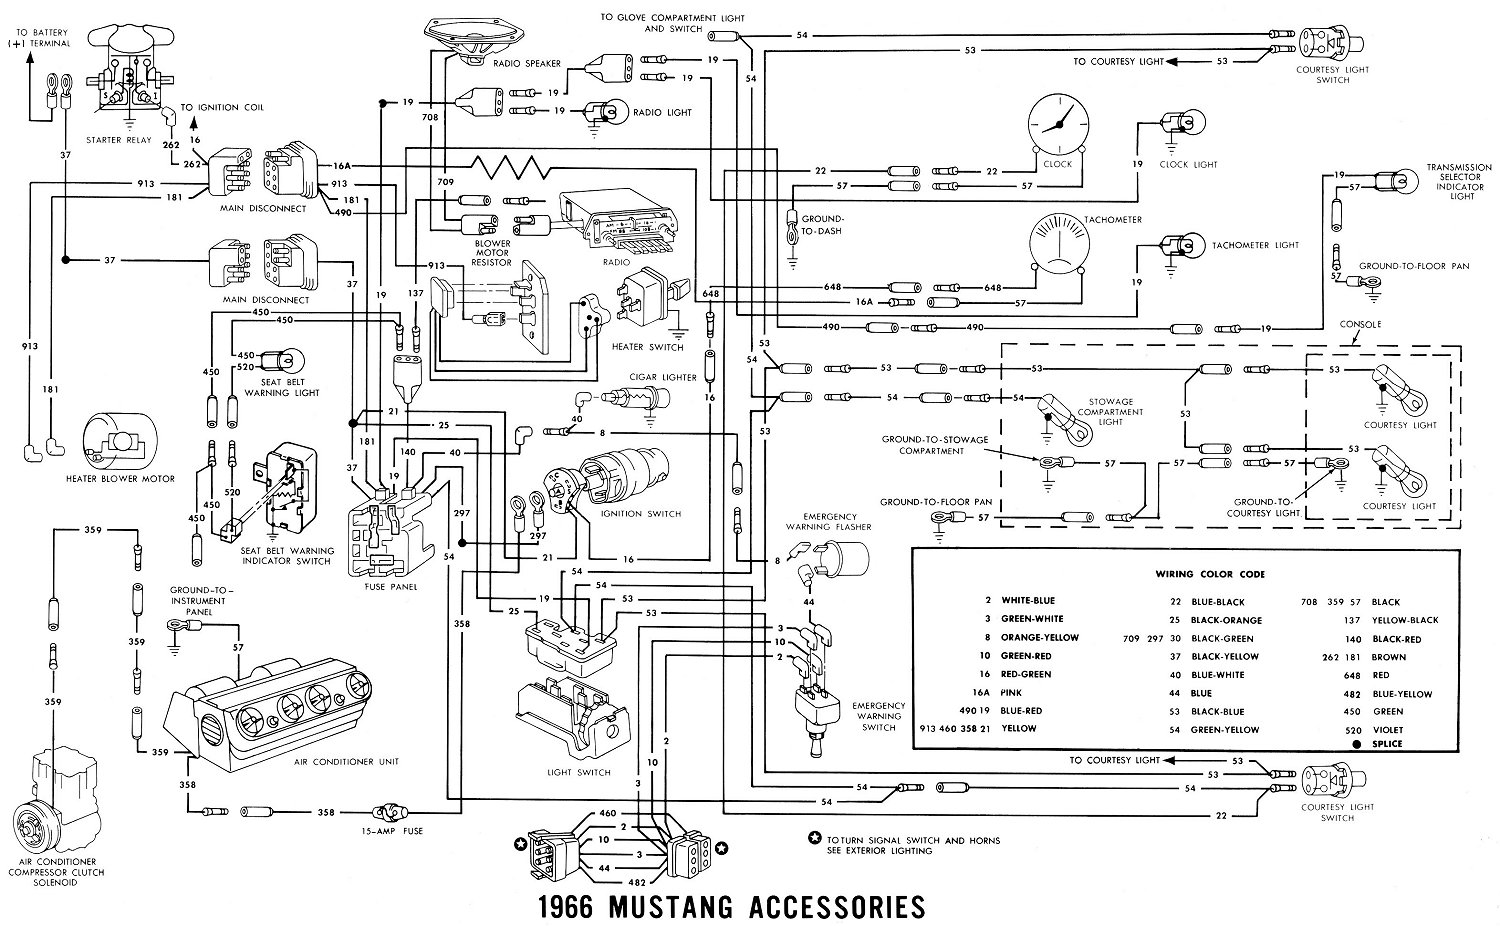 1966 Mustang Wiring Diagrams on 1973 mustang mach 1 wiring diagram